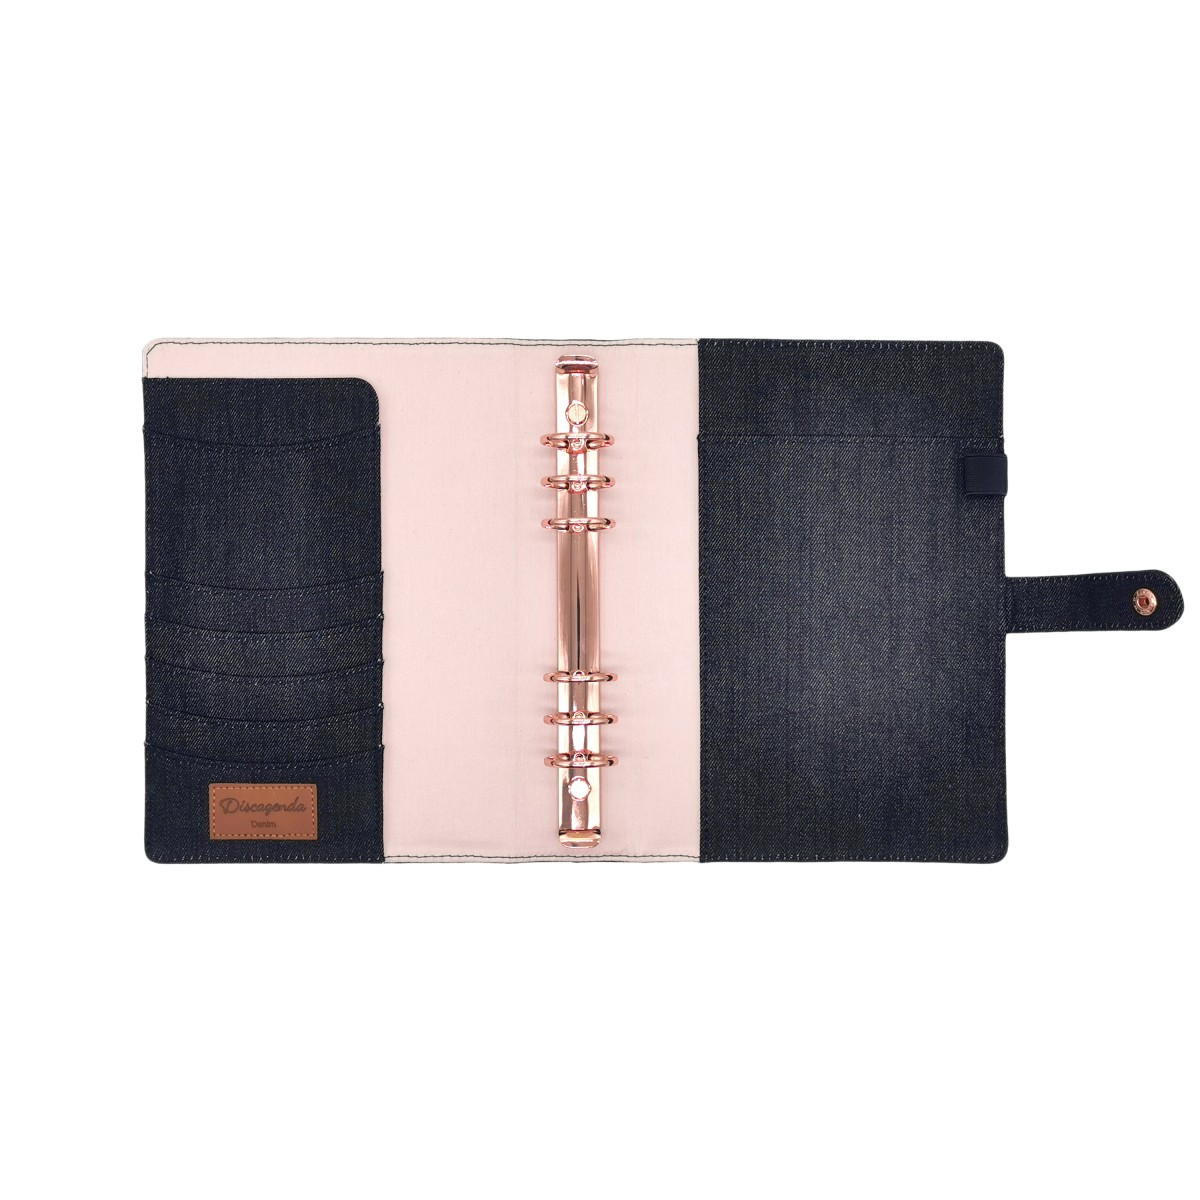 DISCAGENDA DENIM A5 SNAP CLOSURE PLANNER